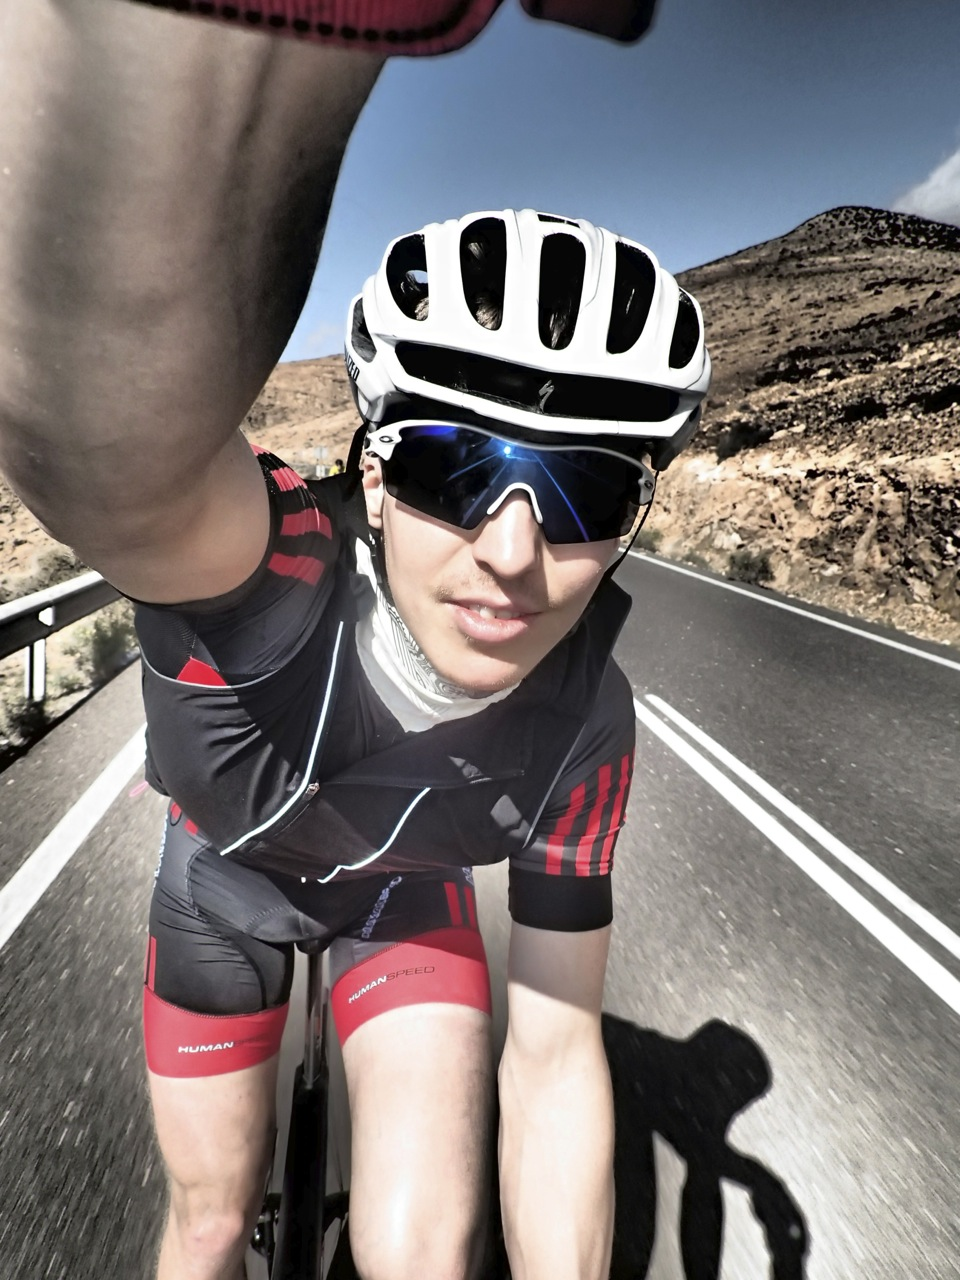 Triallan - Specialized - Humanspeed - TriNordic - Fuerteventura - Cycling - Playitas